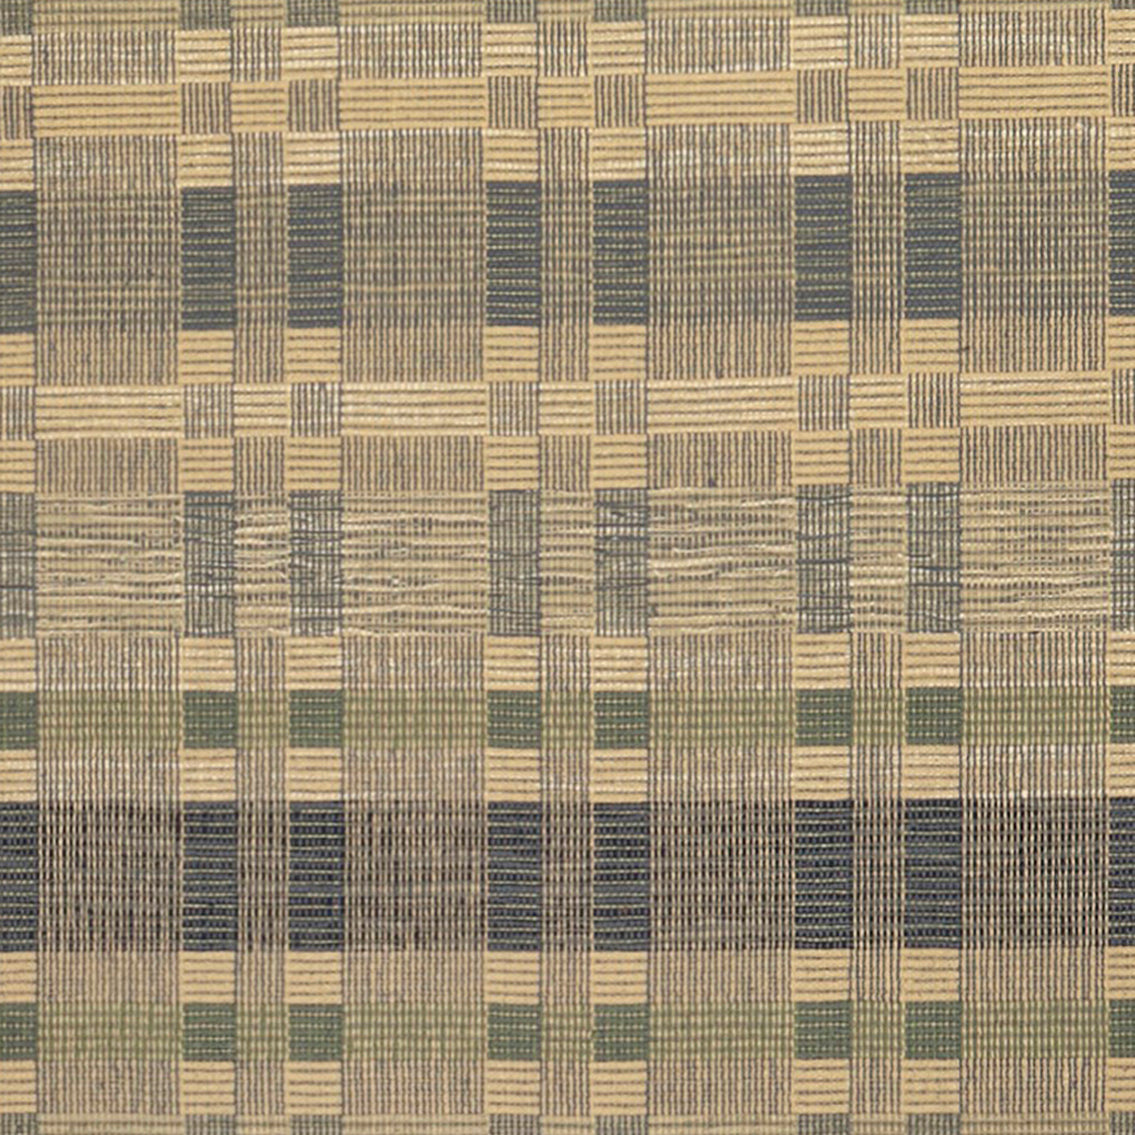 Geometric Checkerboard #90-G is a flat woven check design with various size squares that form an interesting pattern. This colorway works well in coastal or beach homes, or anywhere cooler colors are desired. Featuring blue, blue-green and cream, this versatile design is available in all sizes from 27 inch wide runners to room size area rugs.